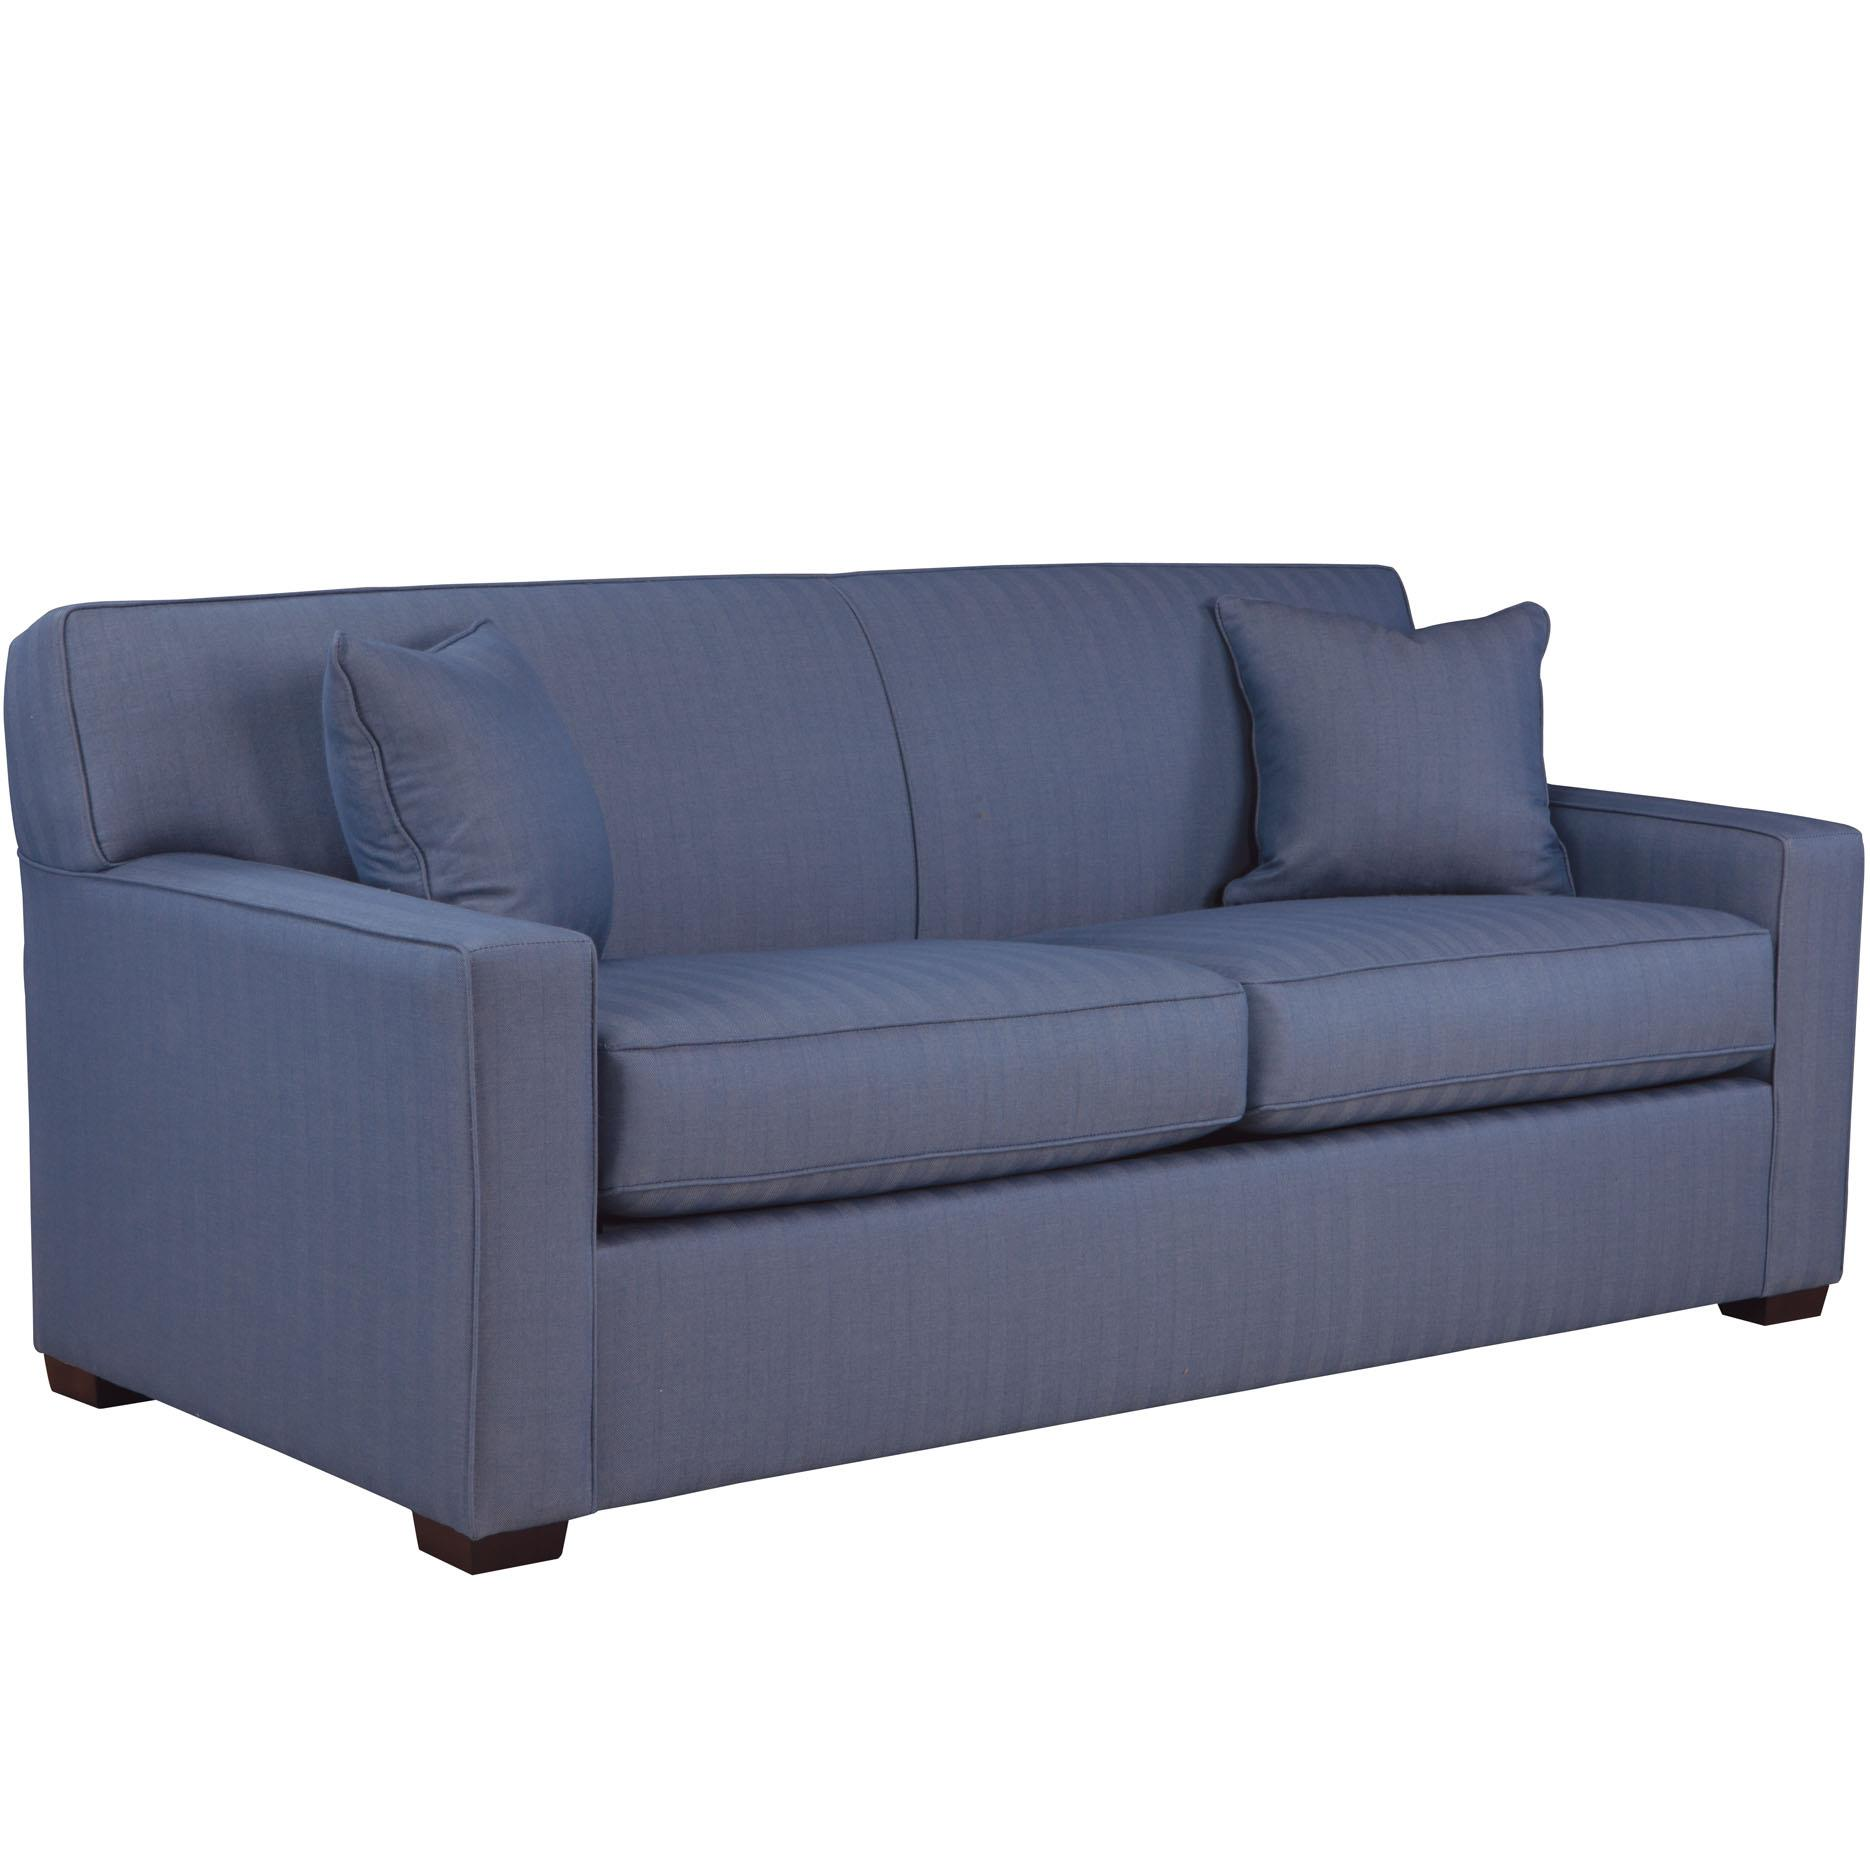 59 Frame Queen Sofa Sleeper by Overnight Sofa at Dream Home Interiors